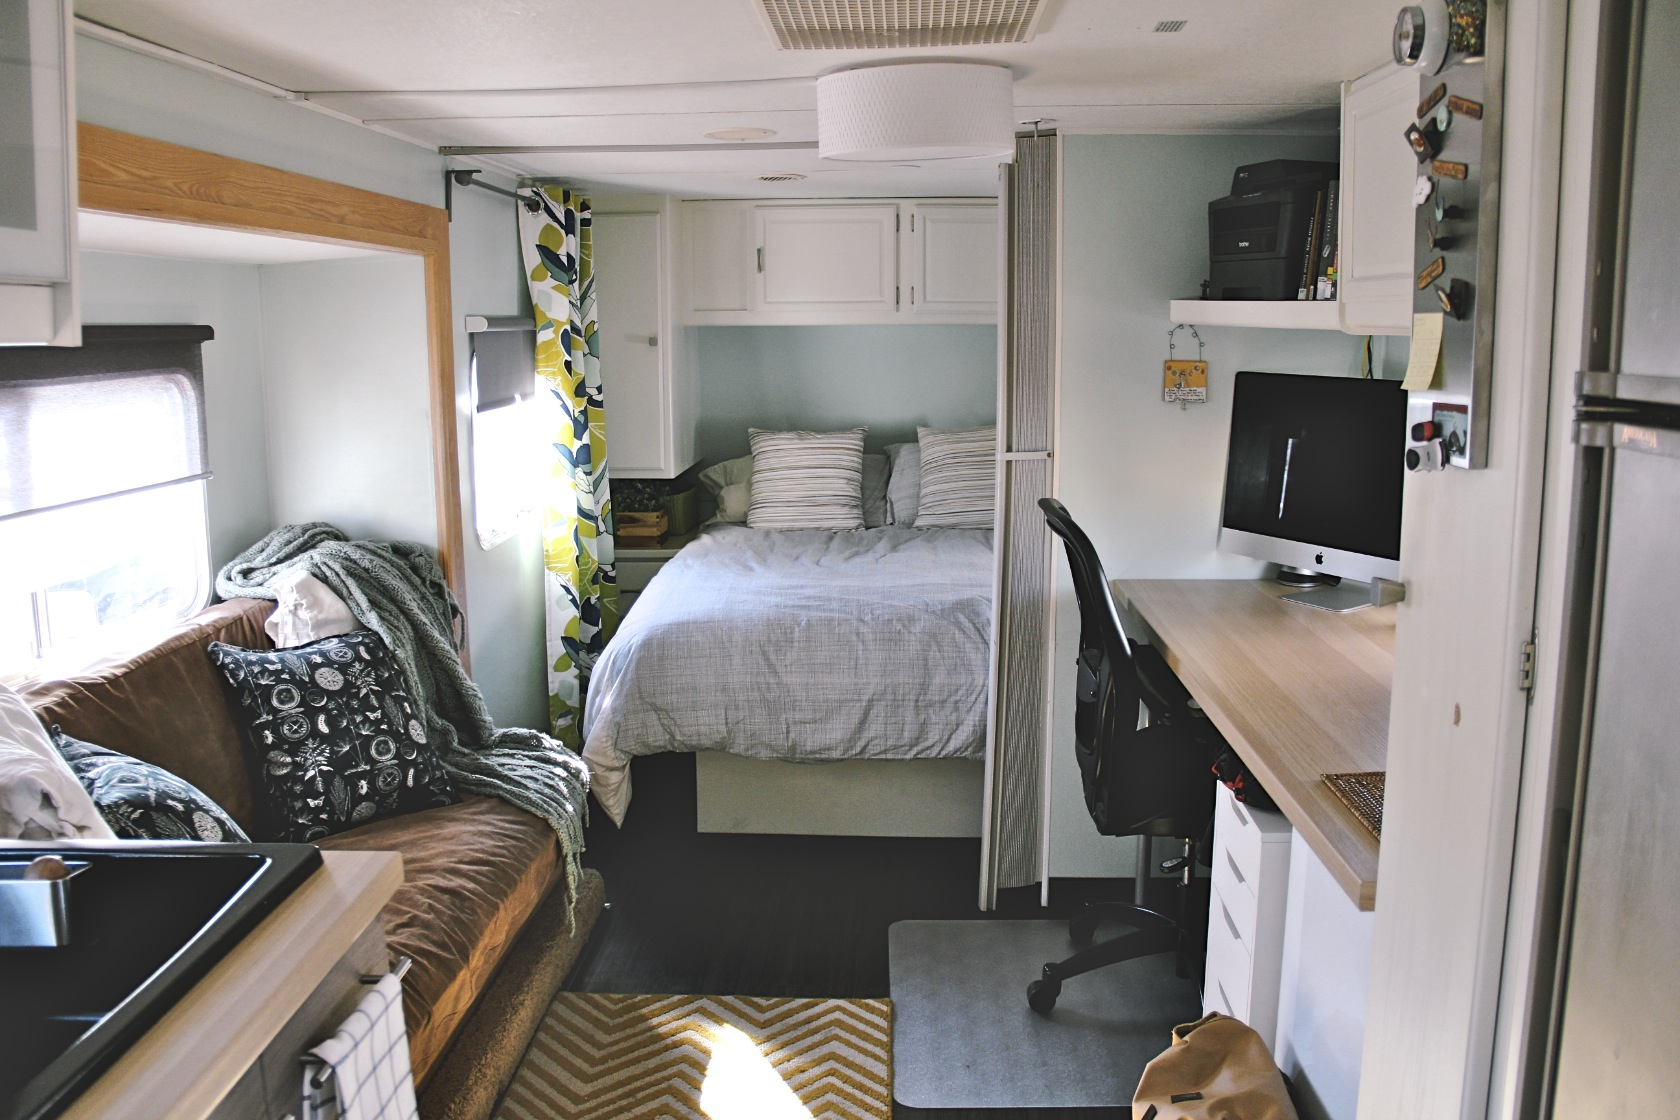 Homes On Wheels: 5 Travel Trailer Makeovers We Love - Porch Advice